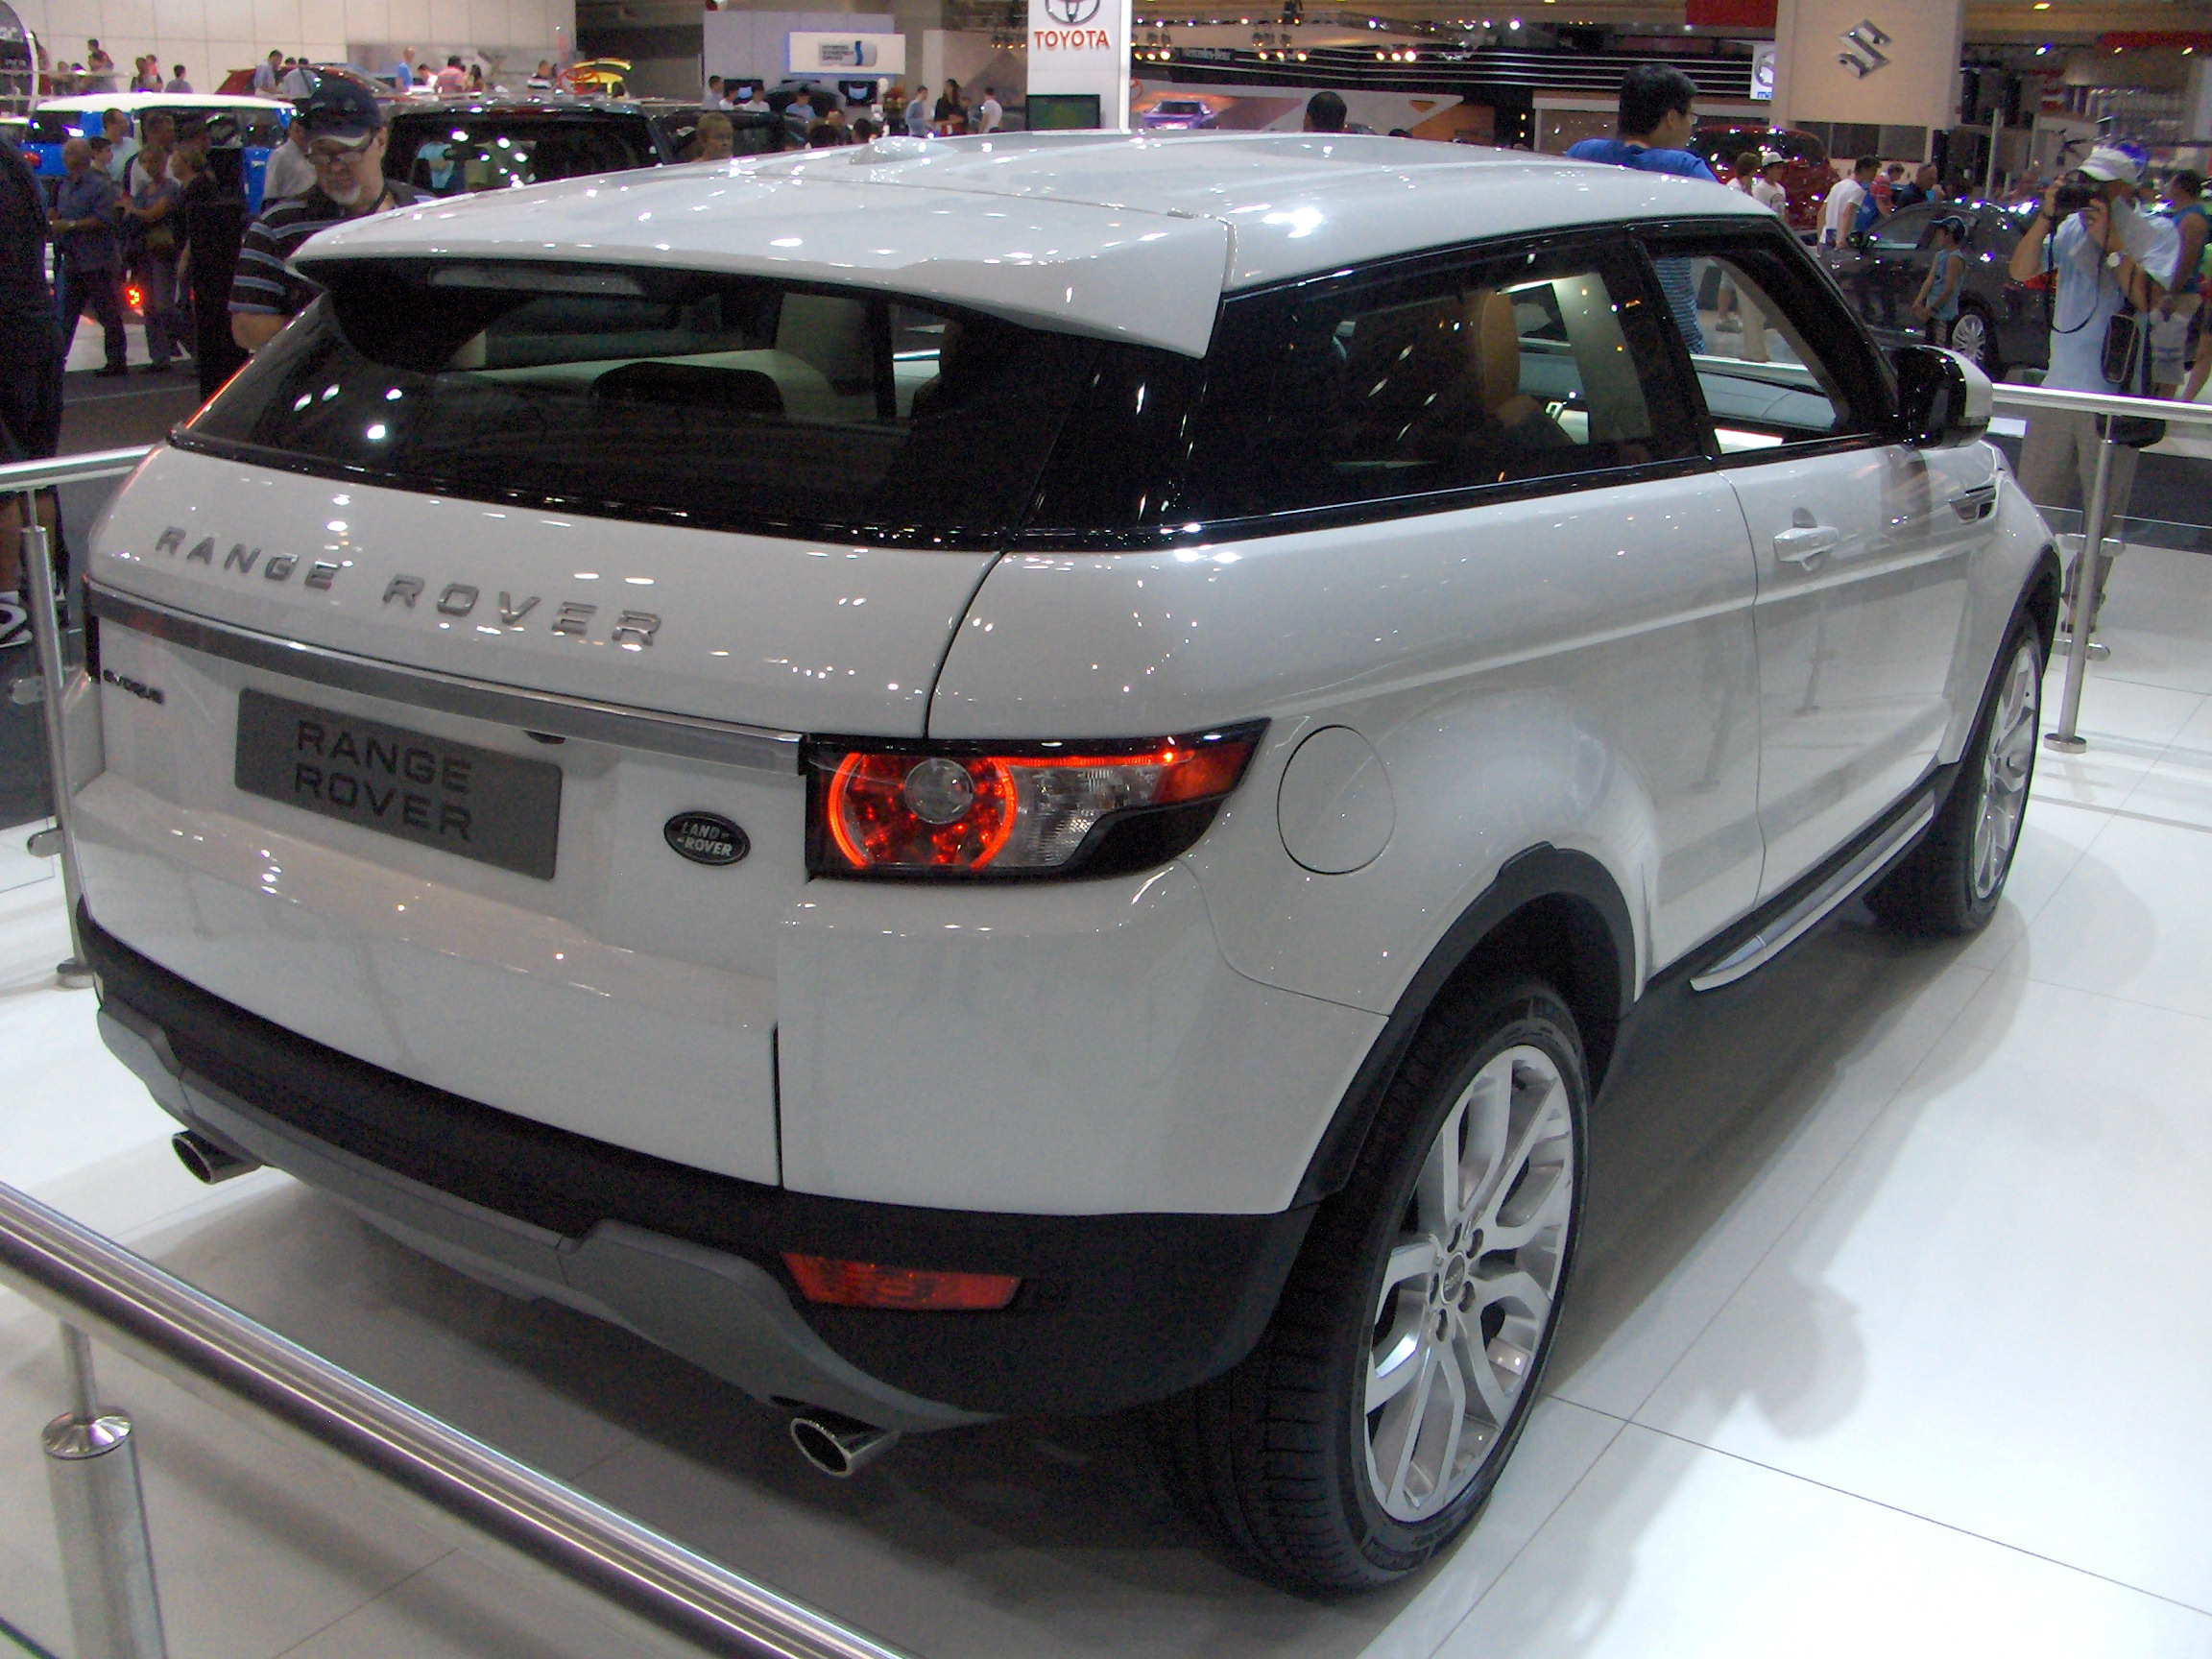 Range Rover Evoque Build Your Own >> File:Range rover evoque rear - AIMS.JPG - Wikimedia Commons